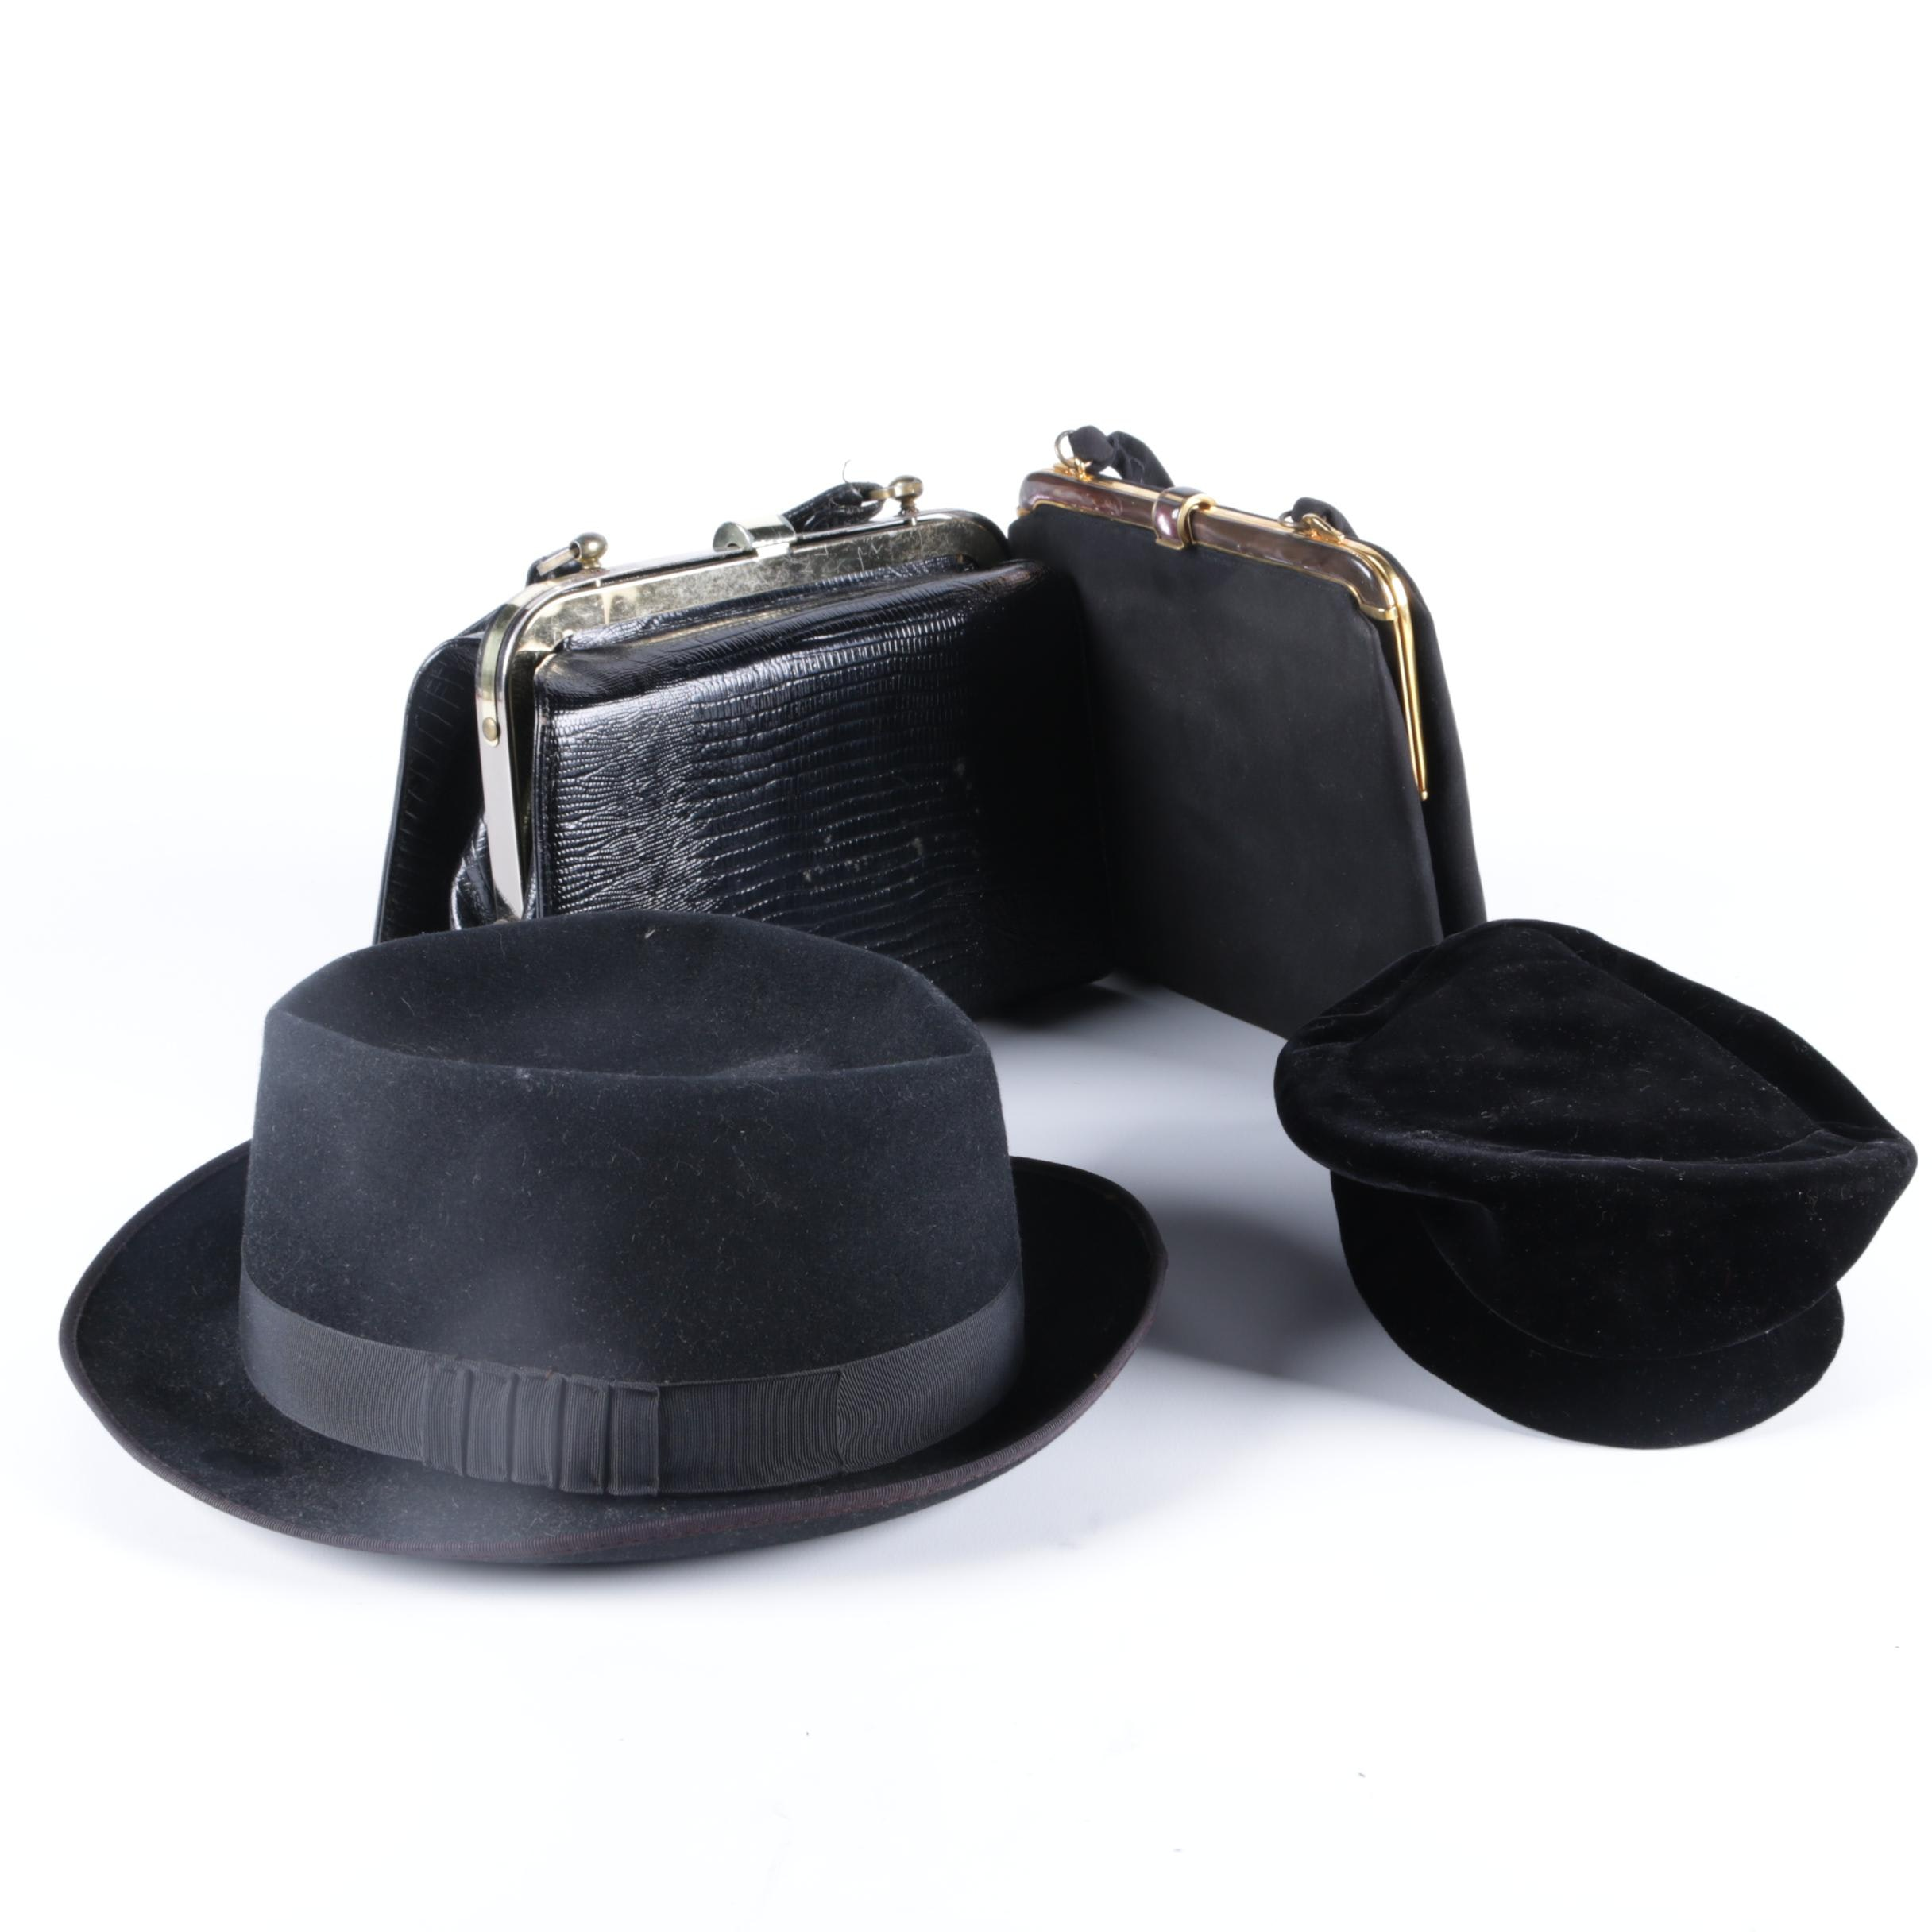 Vintage Hats and Handbags Including MadCaps